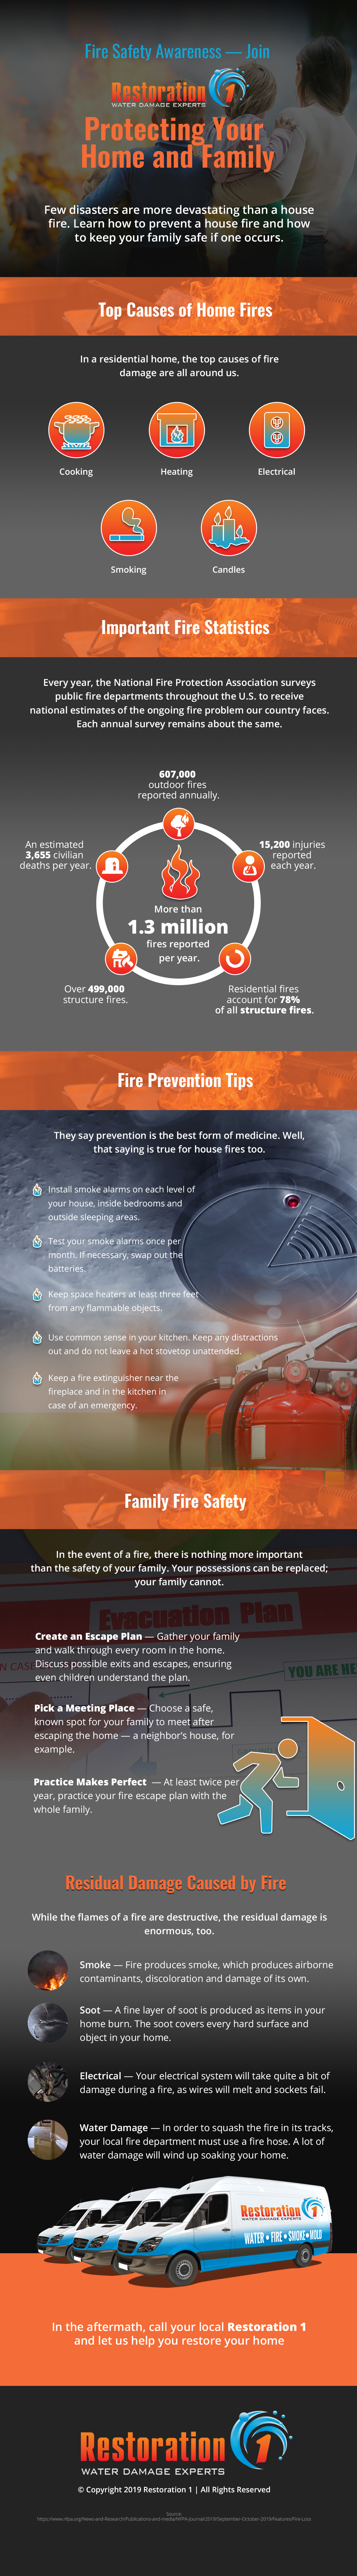 Fire Prevention Week Is Here — The Fire Safety Plan Every Homes Needs